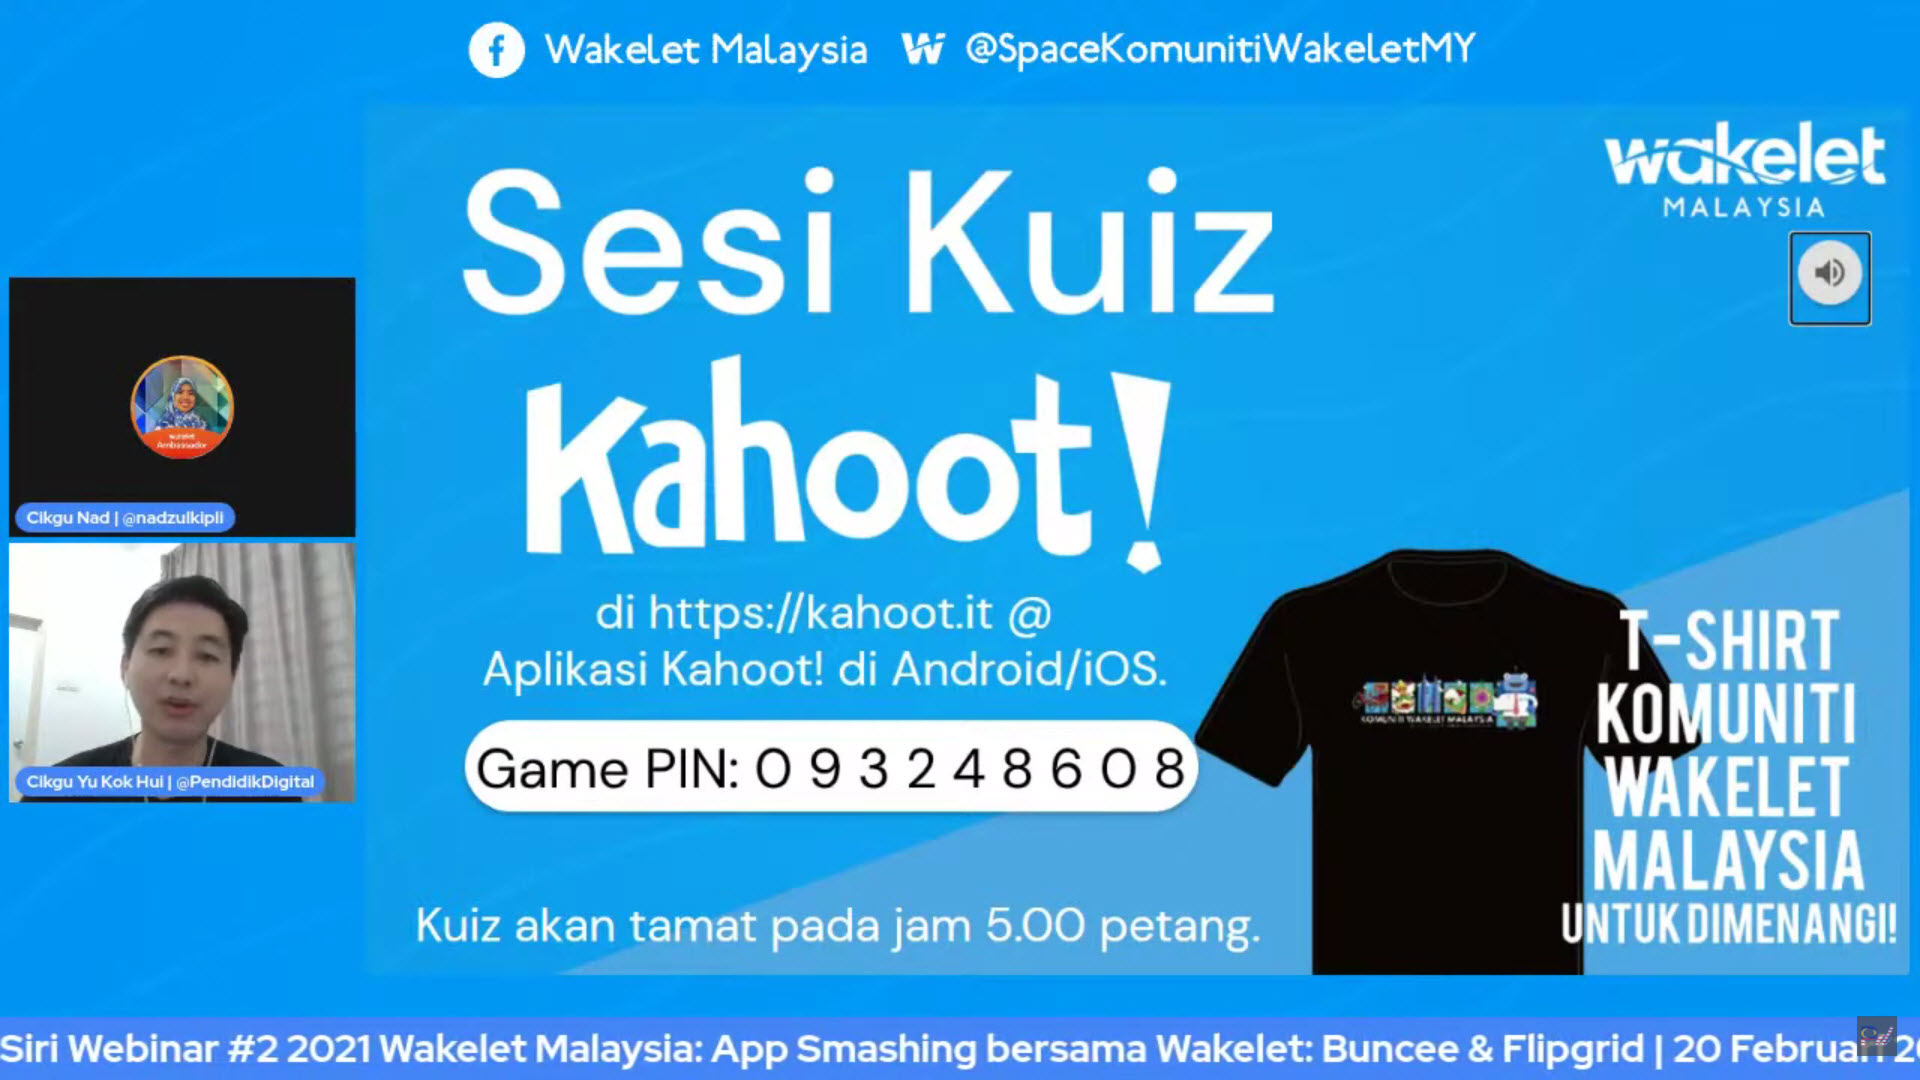 Spice Up Wakelet Training Sessions with Kahoot! - Wakelet Malaysia's First Webinar - Kahoot! Challenge